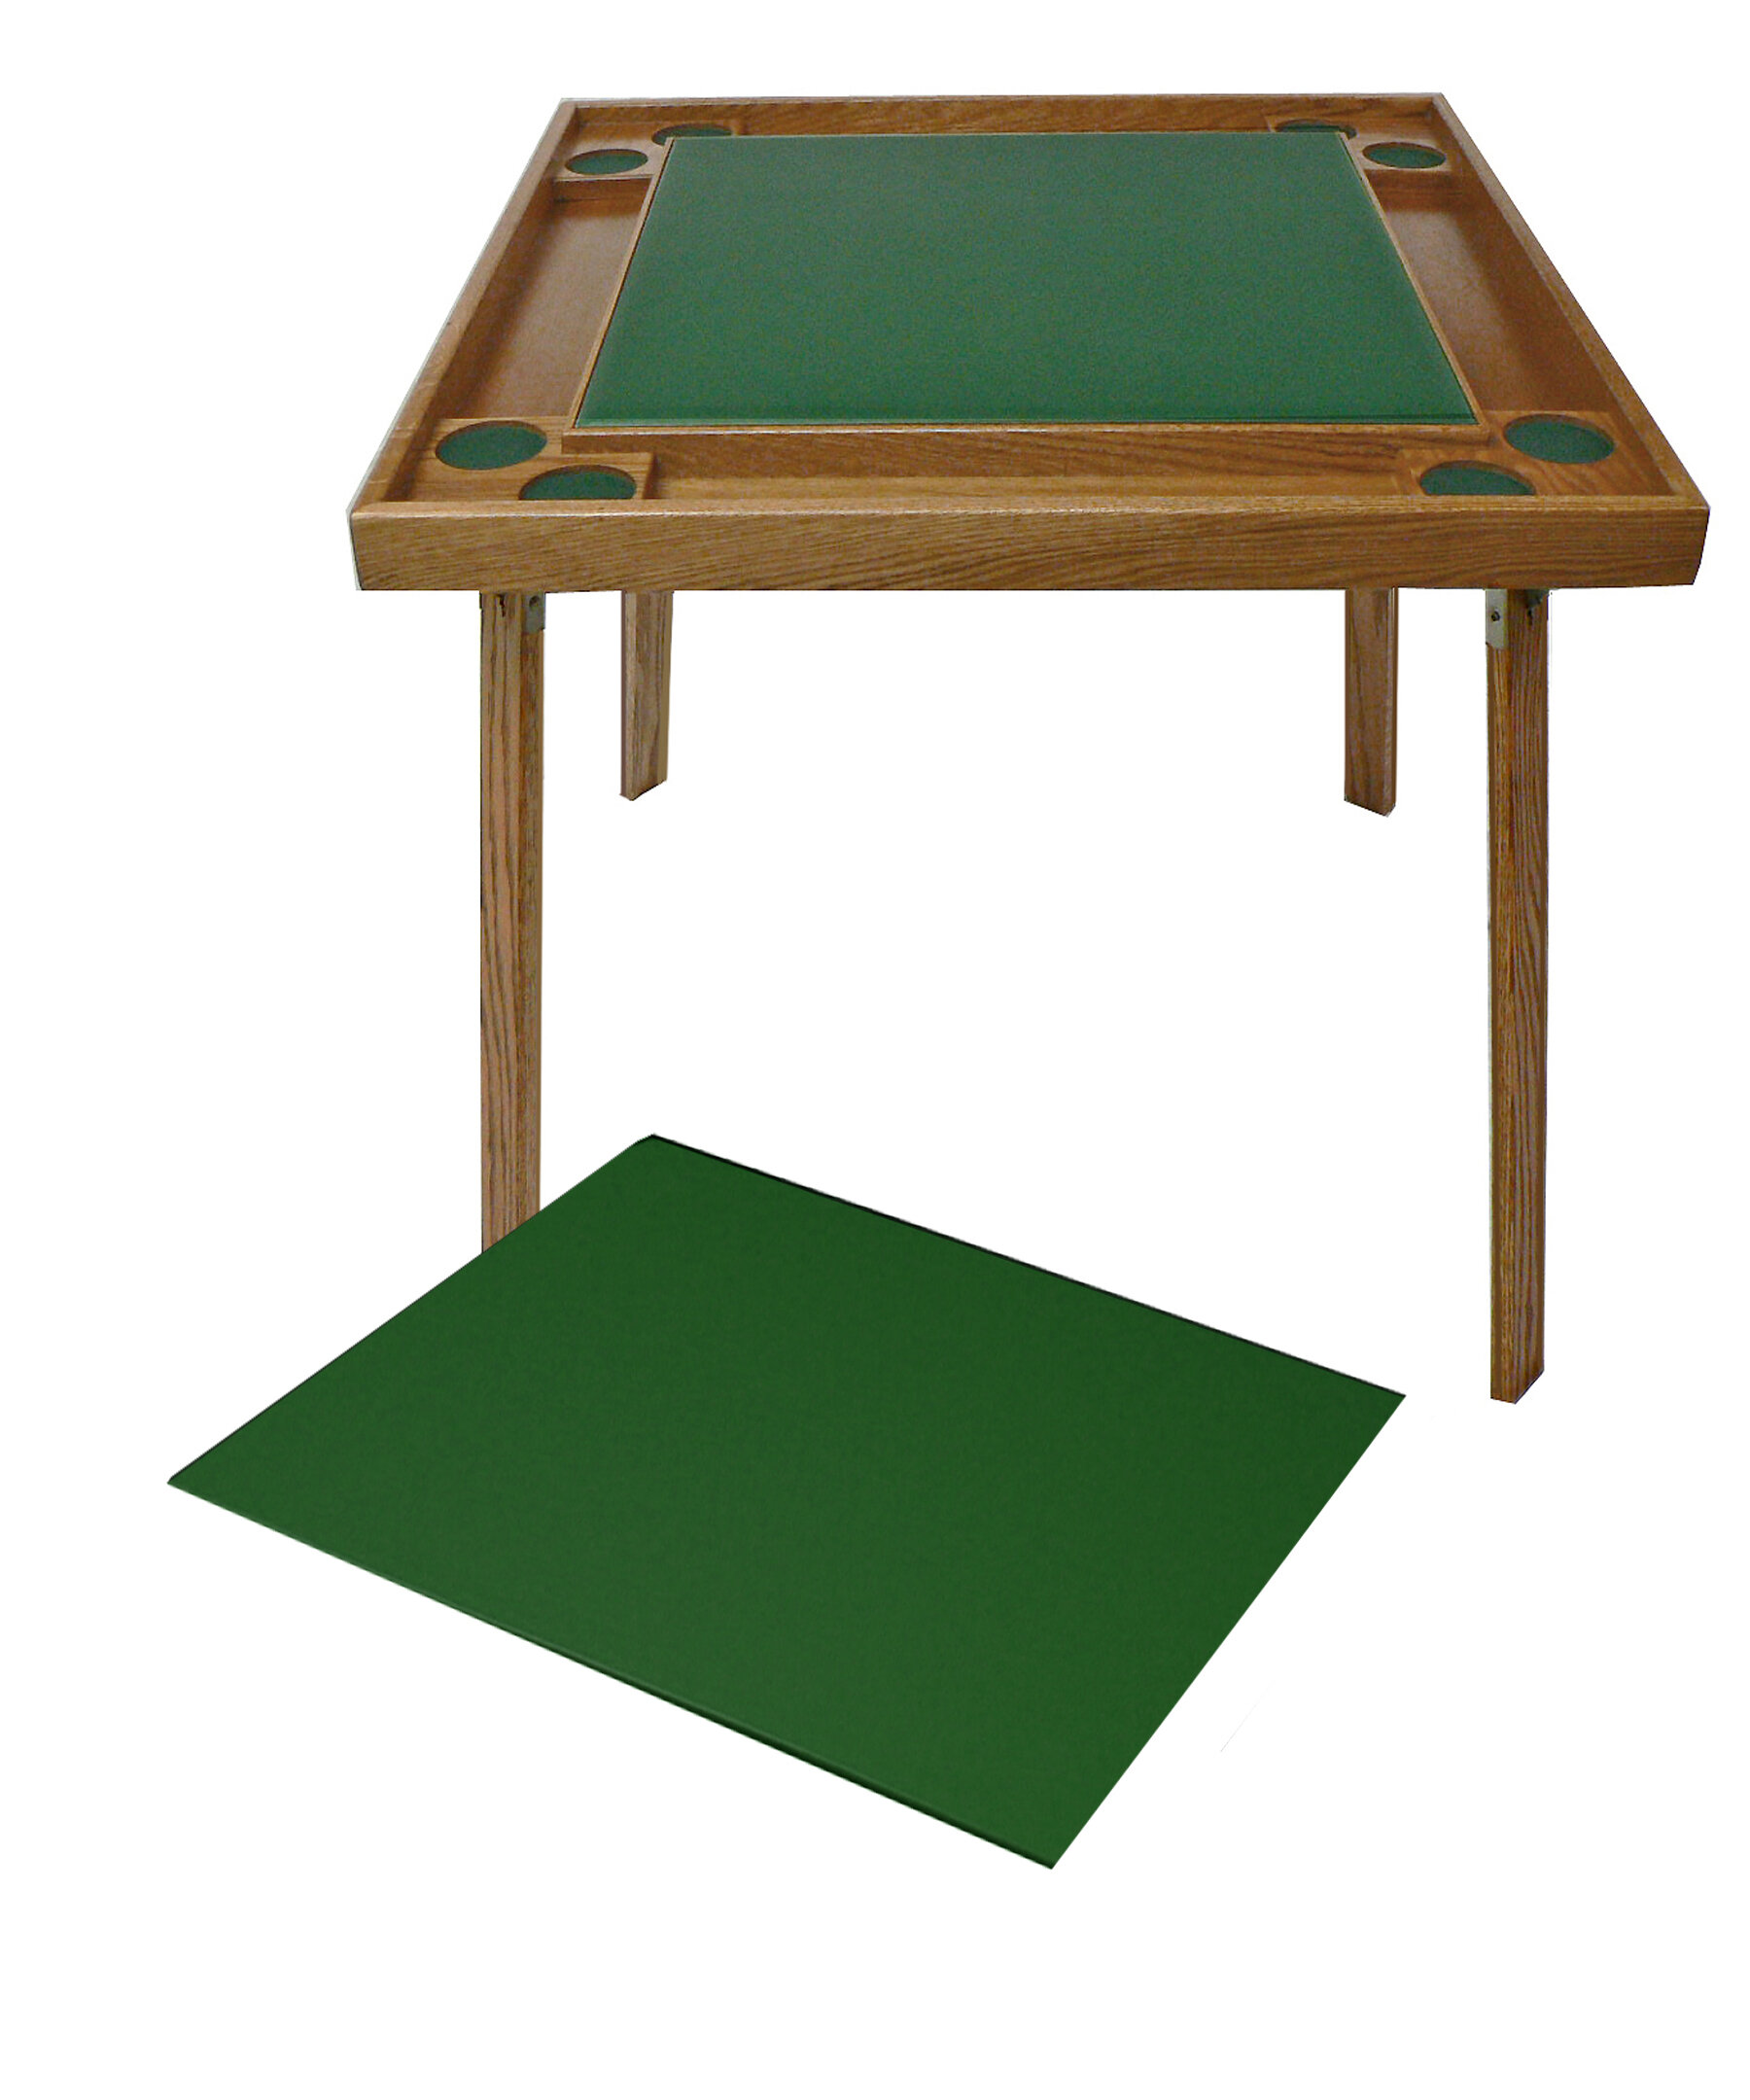 Kestell Furniture Classic Game Tables You'll Love in 2021 | Wayfair